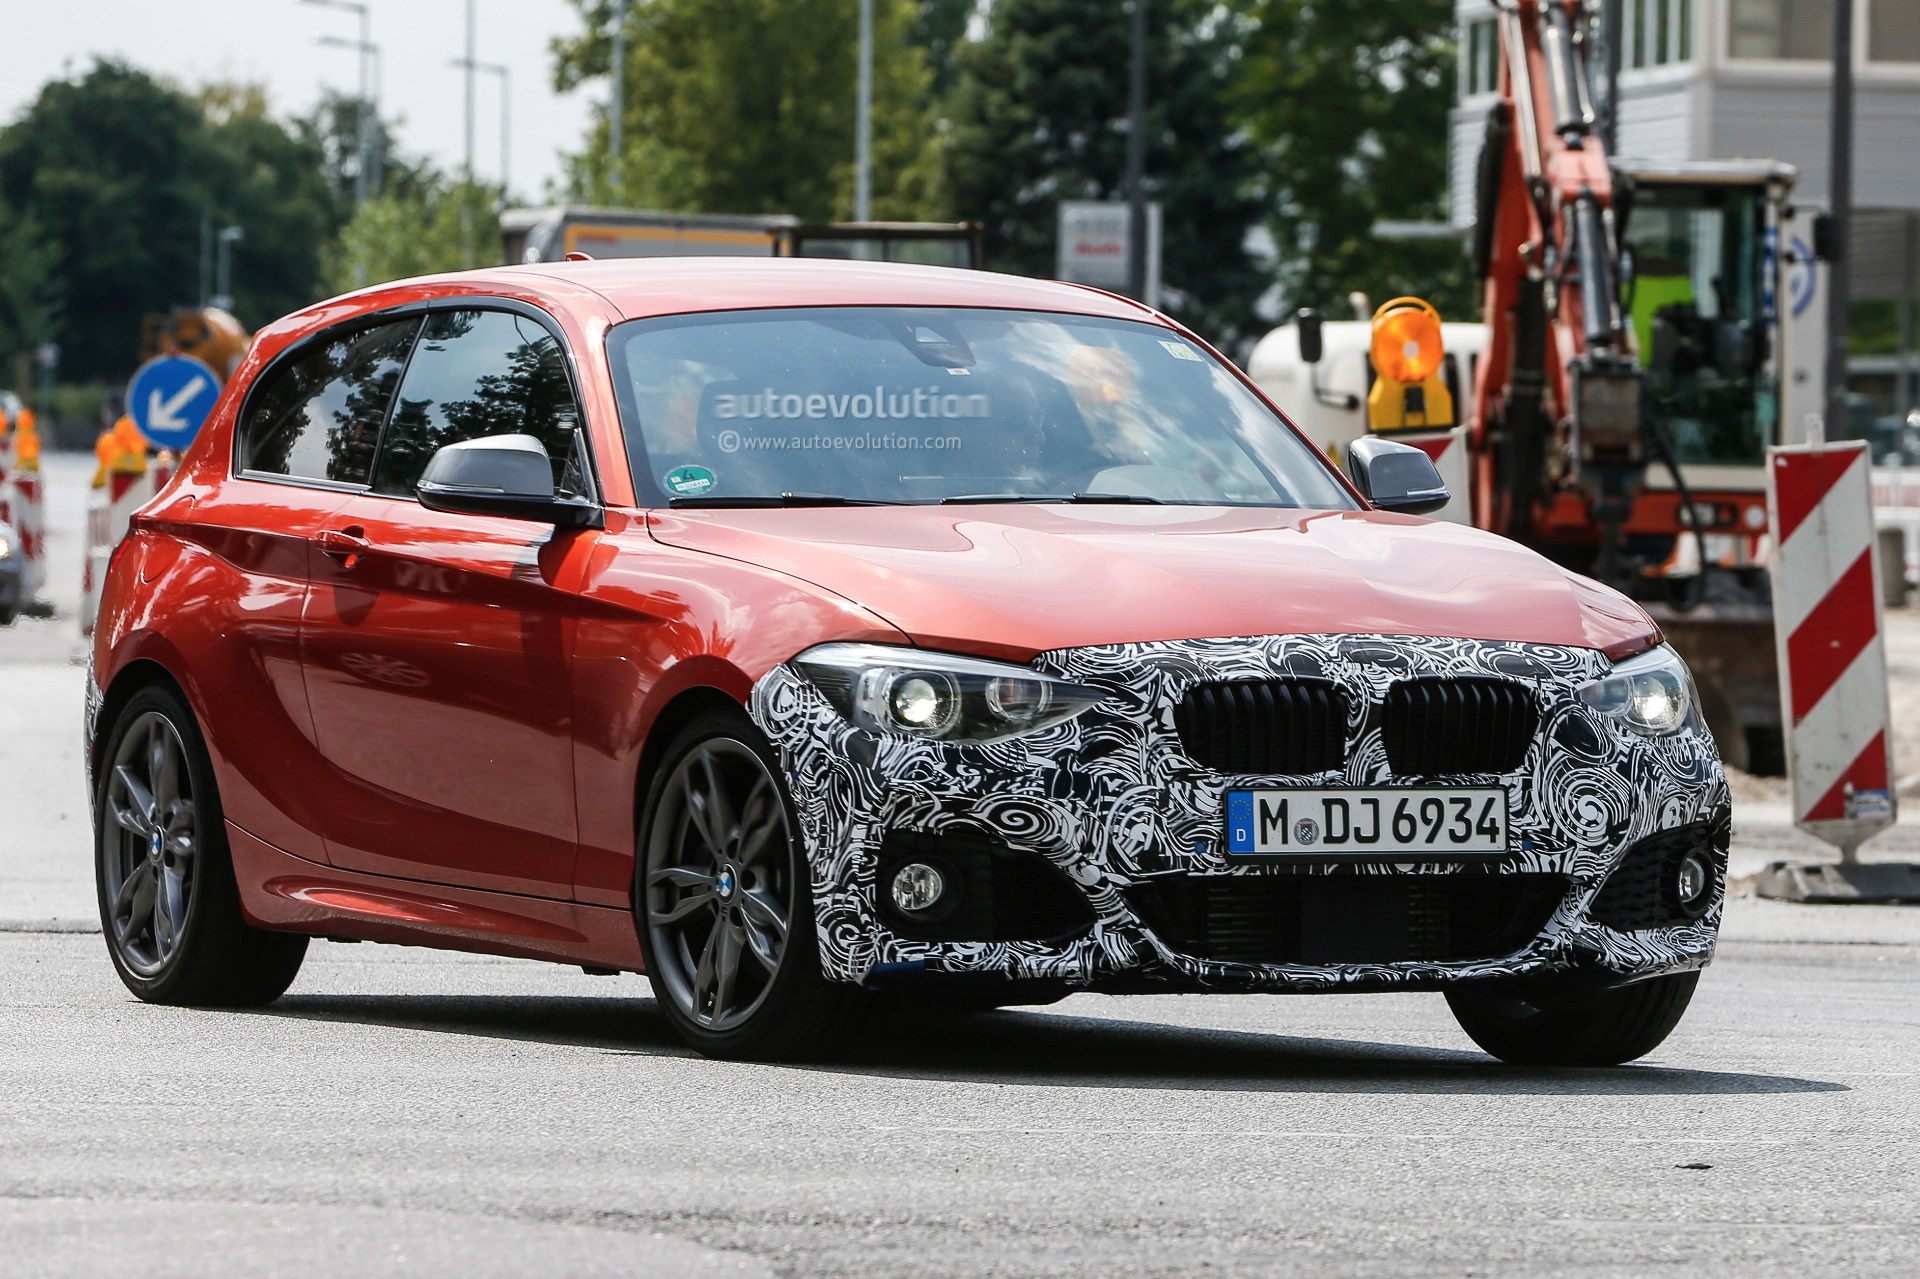 bmw-1-series-facelift-rolls-into-view_1.